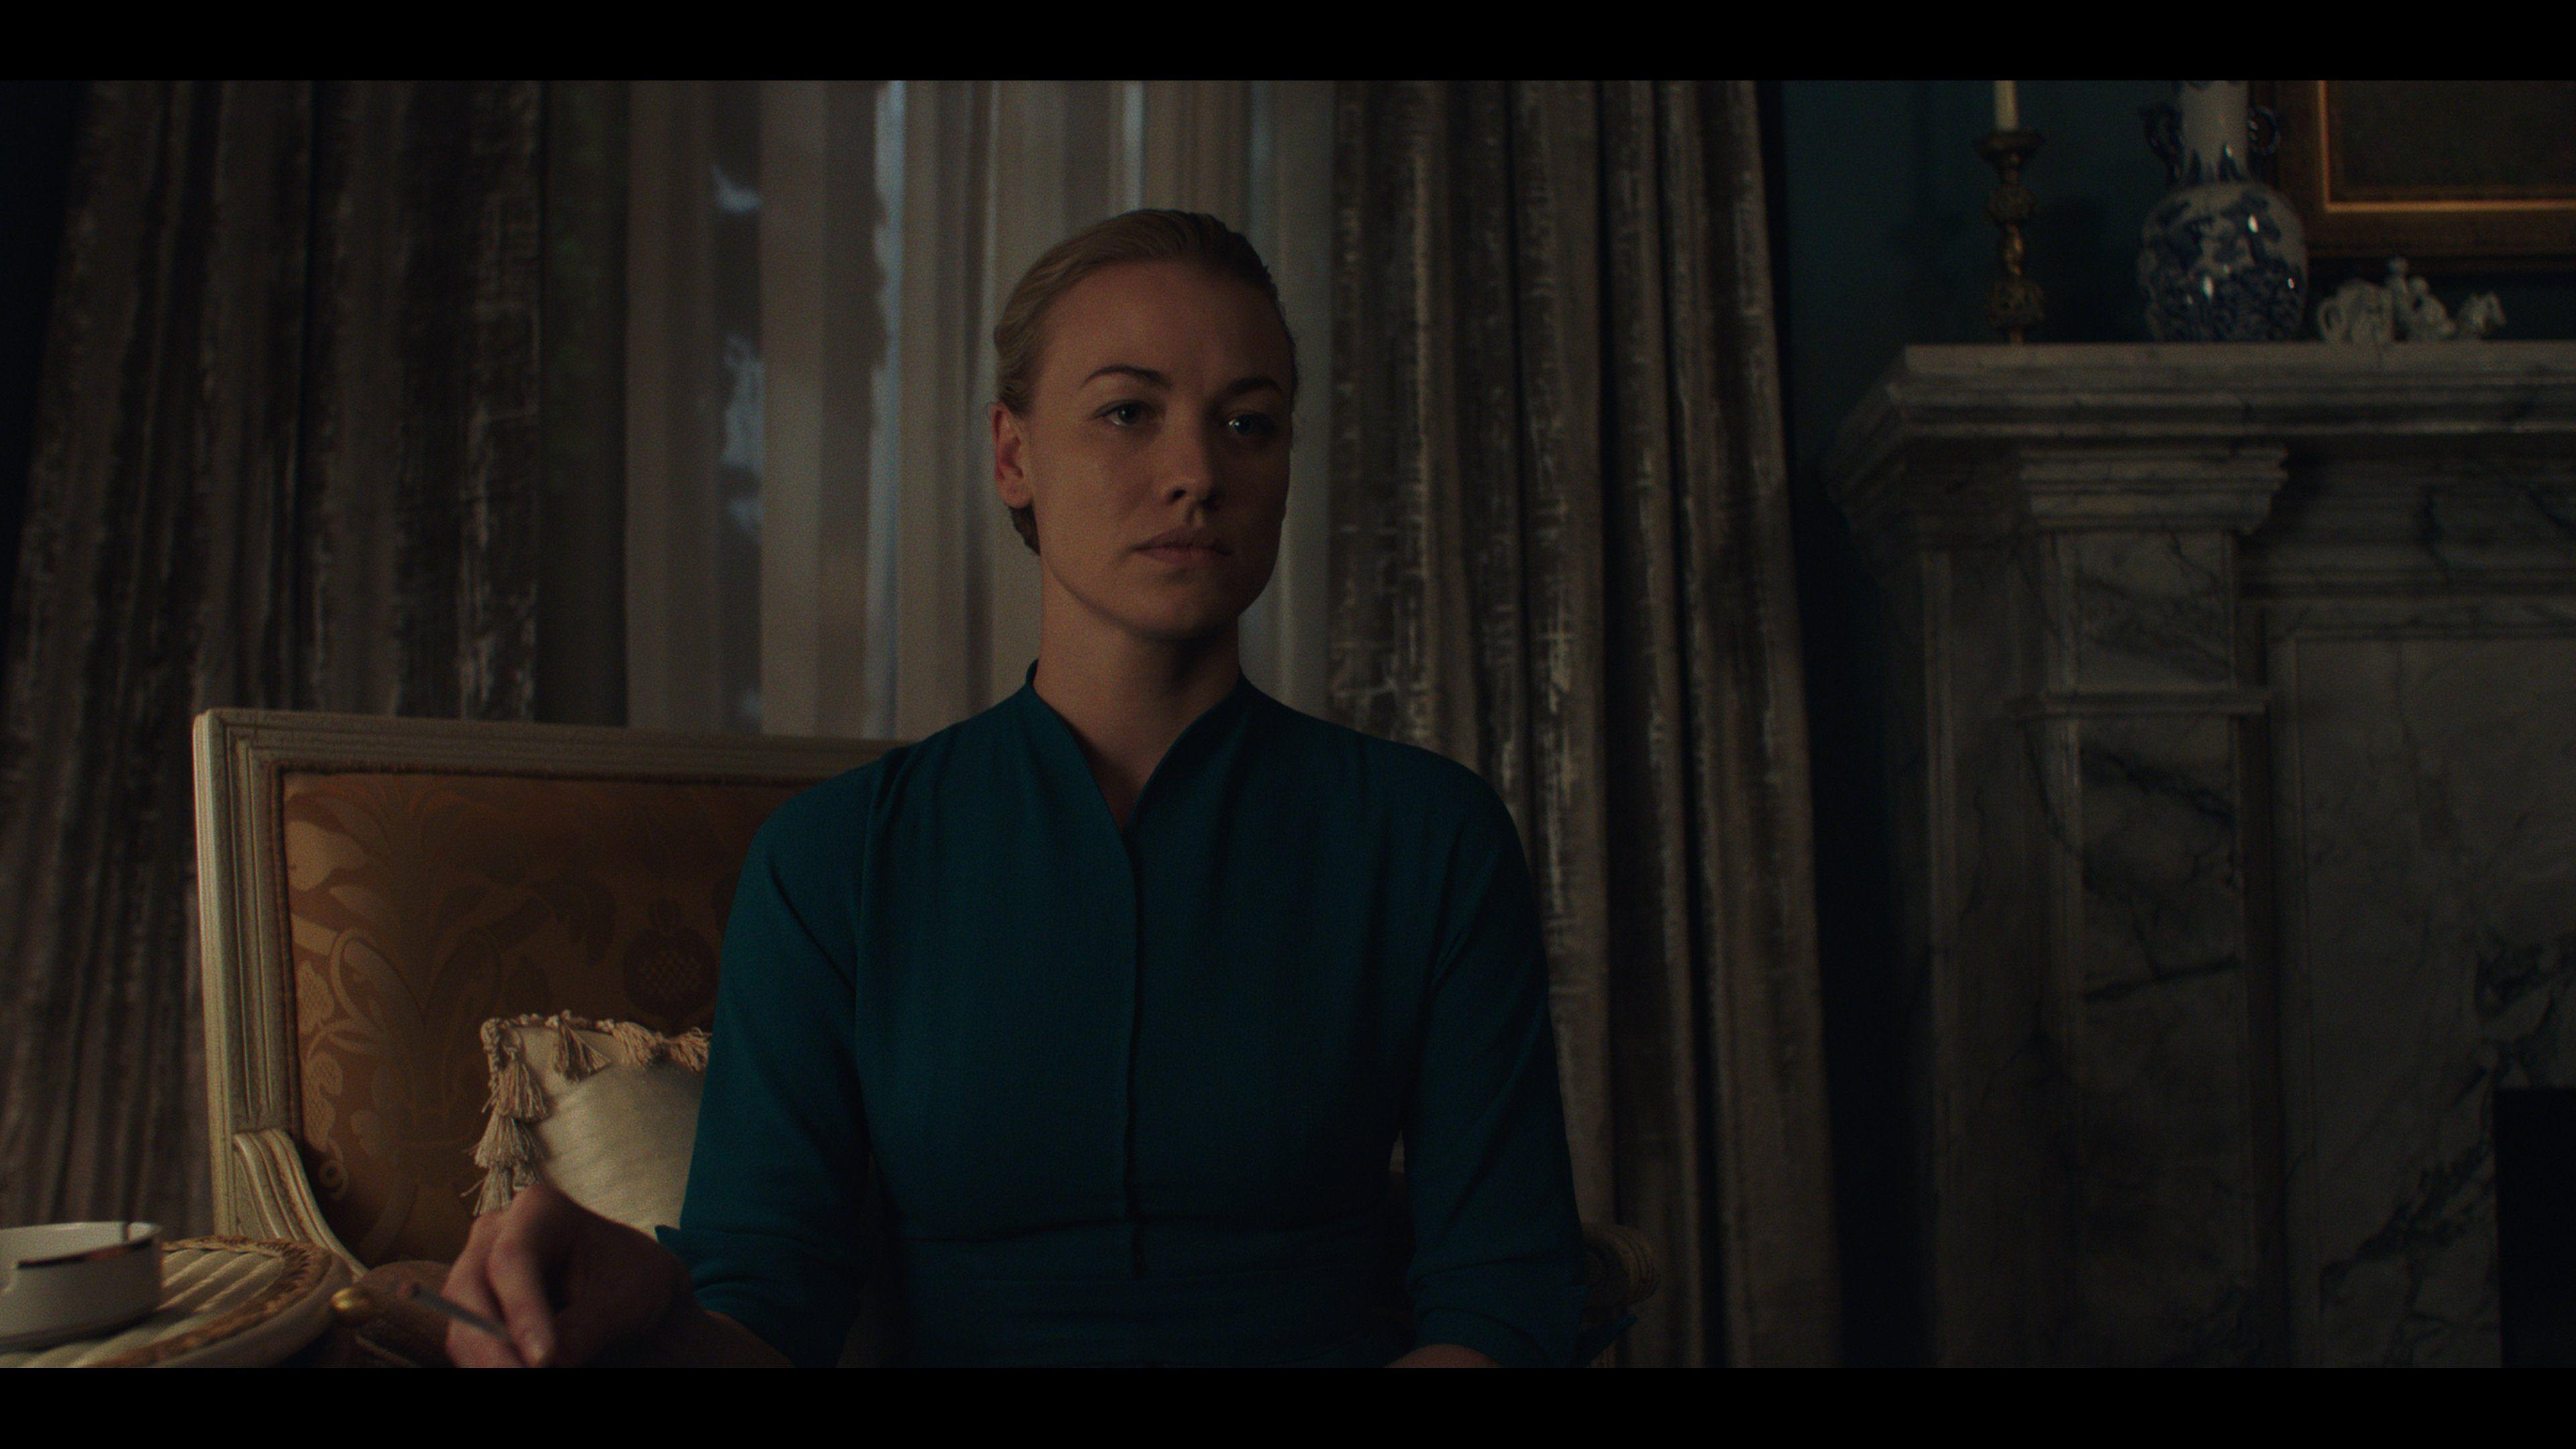 The Handmaid's Tale' New Photos With Elisabeth Moss, Samira Wiley ...